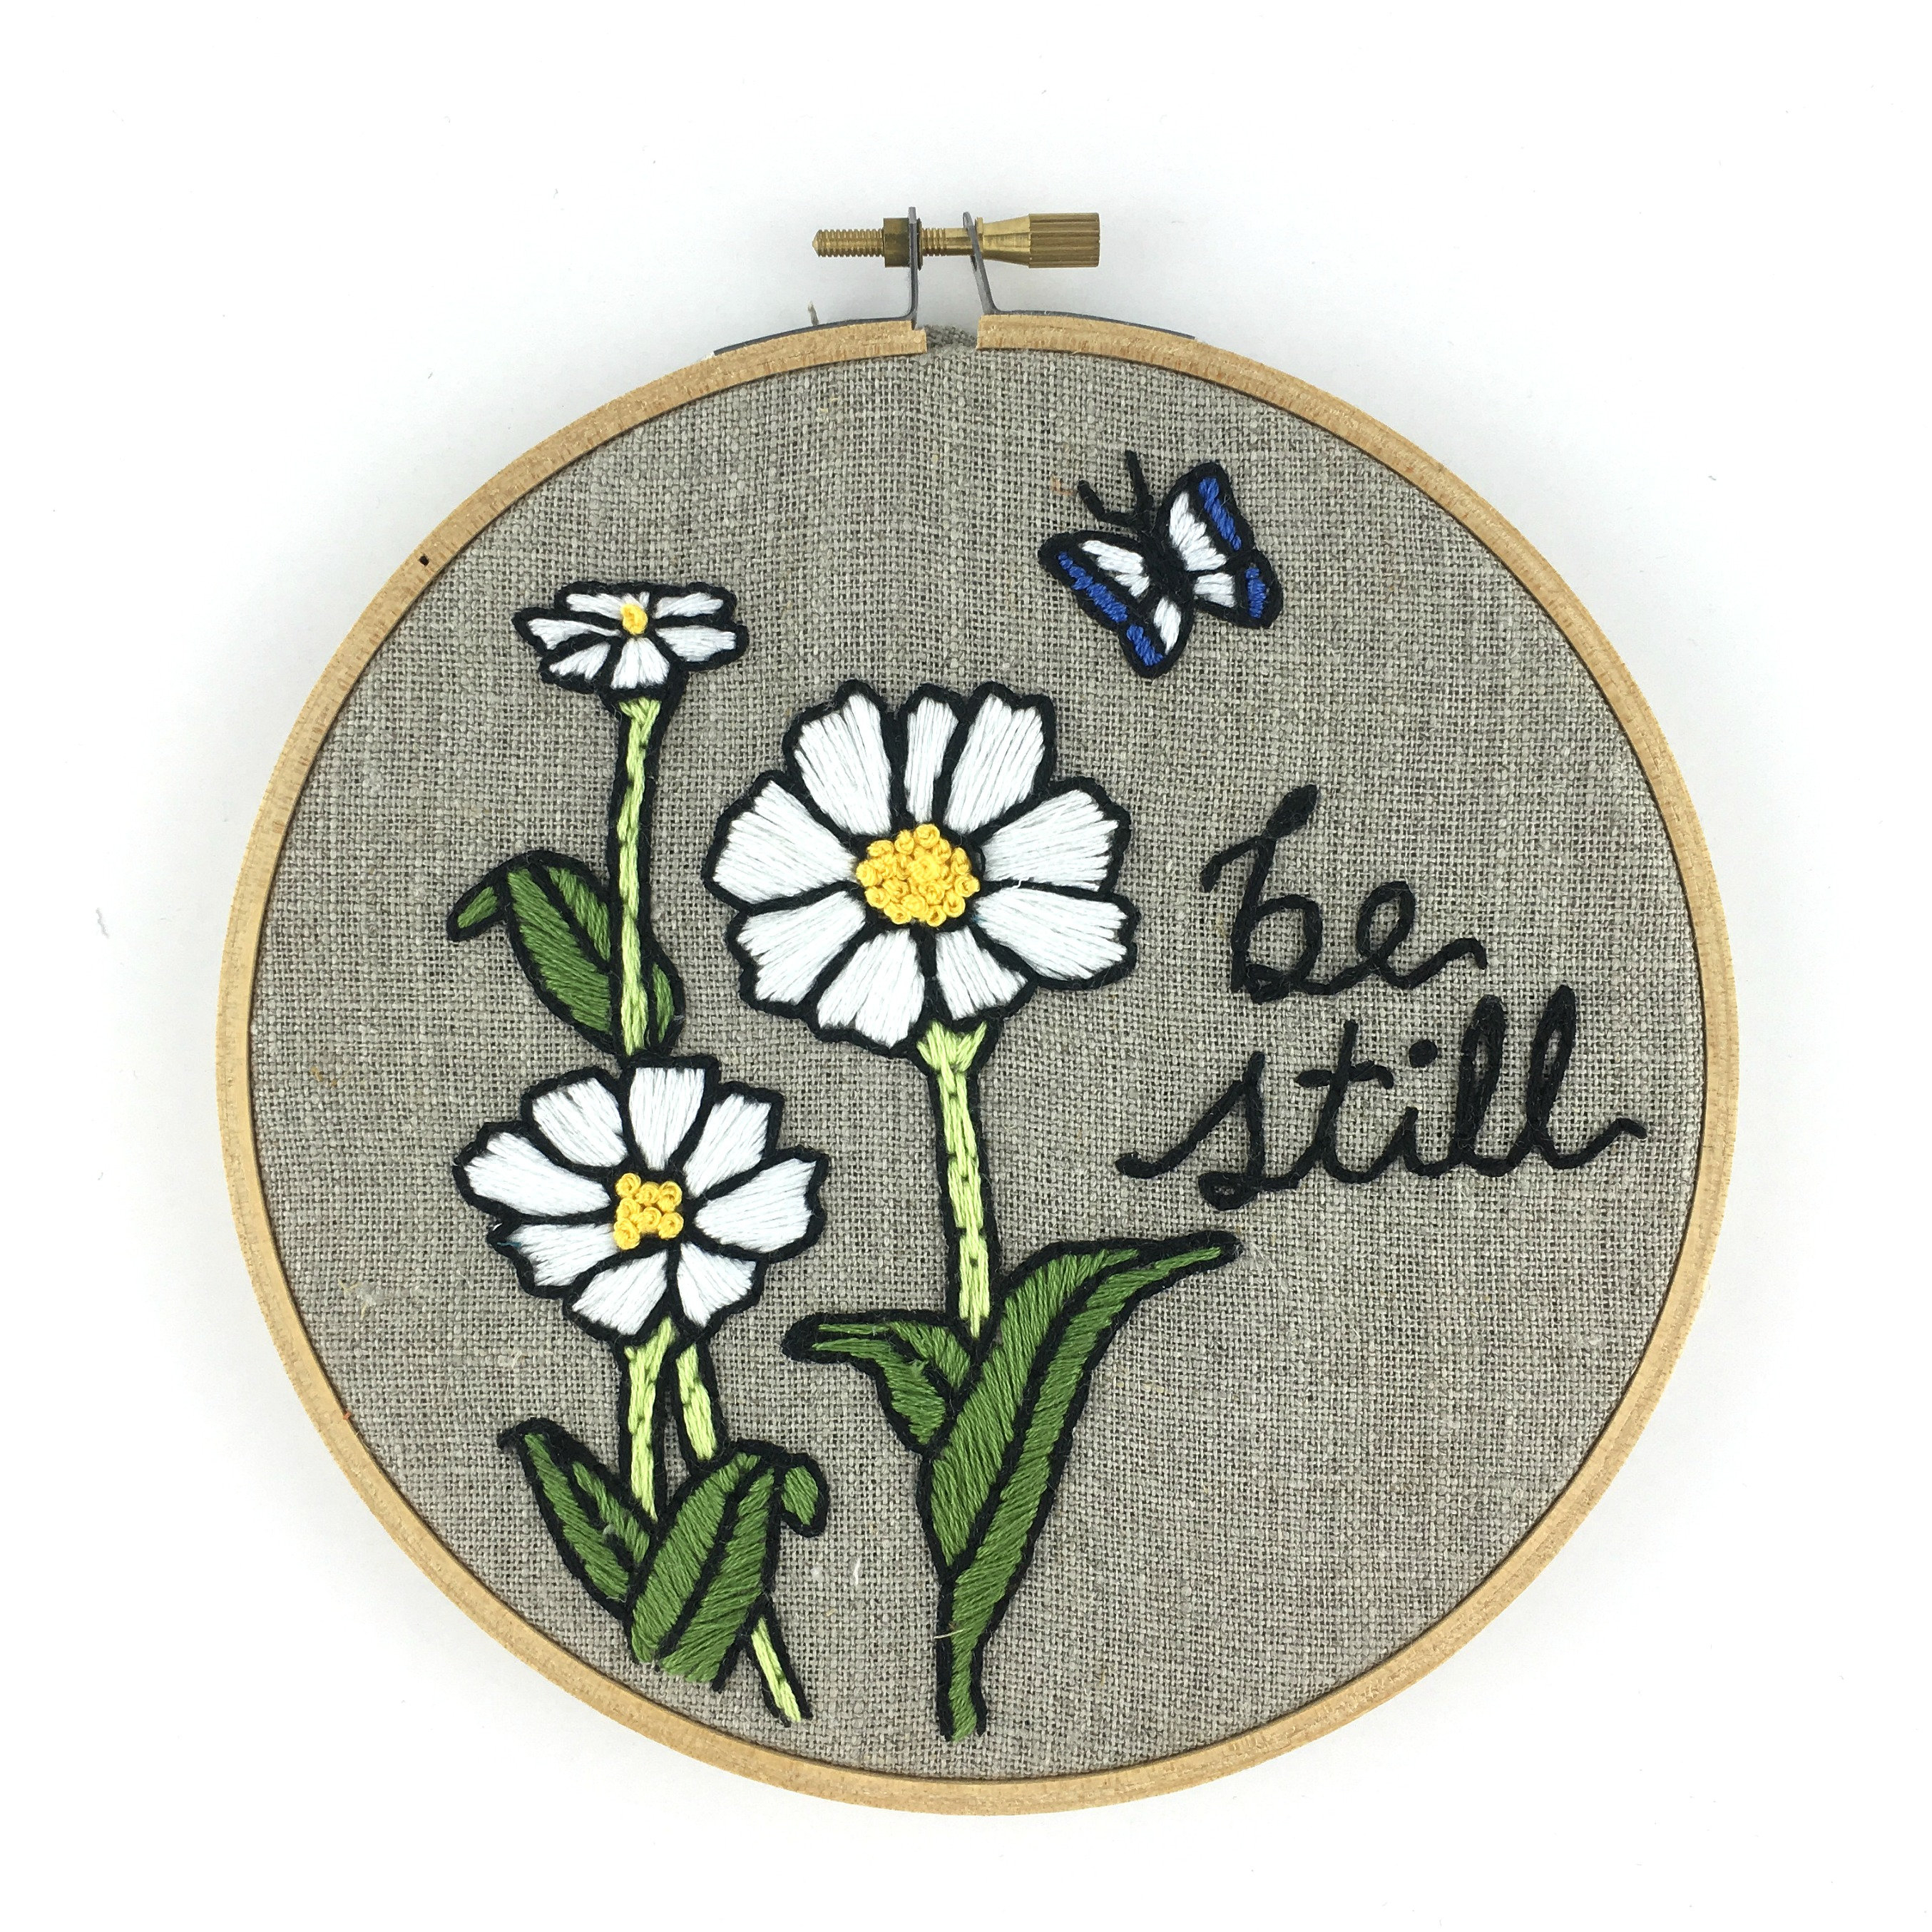 How To Read Embroidery Patterns Be Still Embroidery Kit Easy Beginner Embroidery Kit Floral